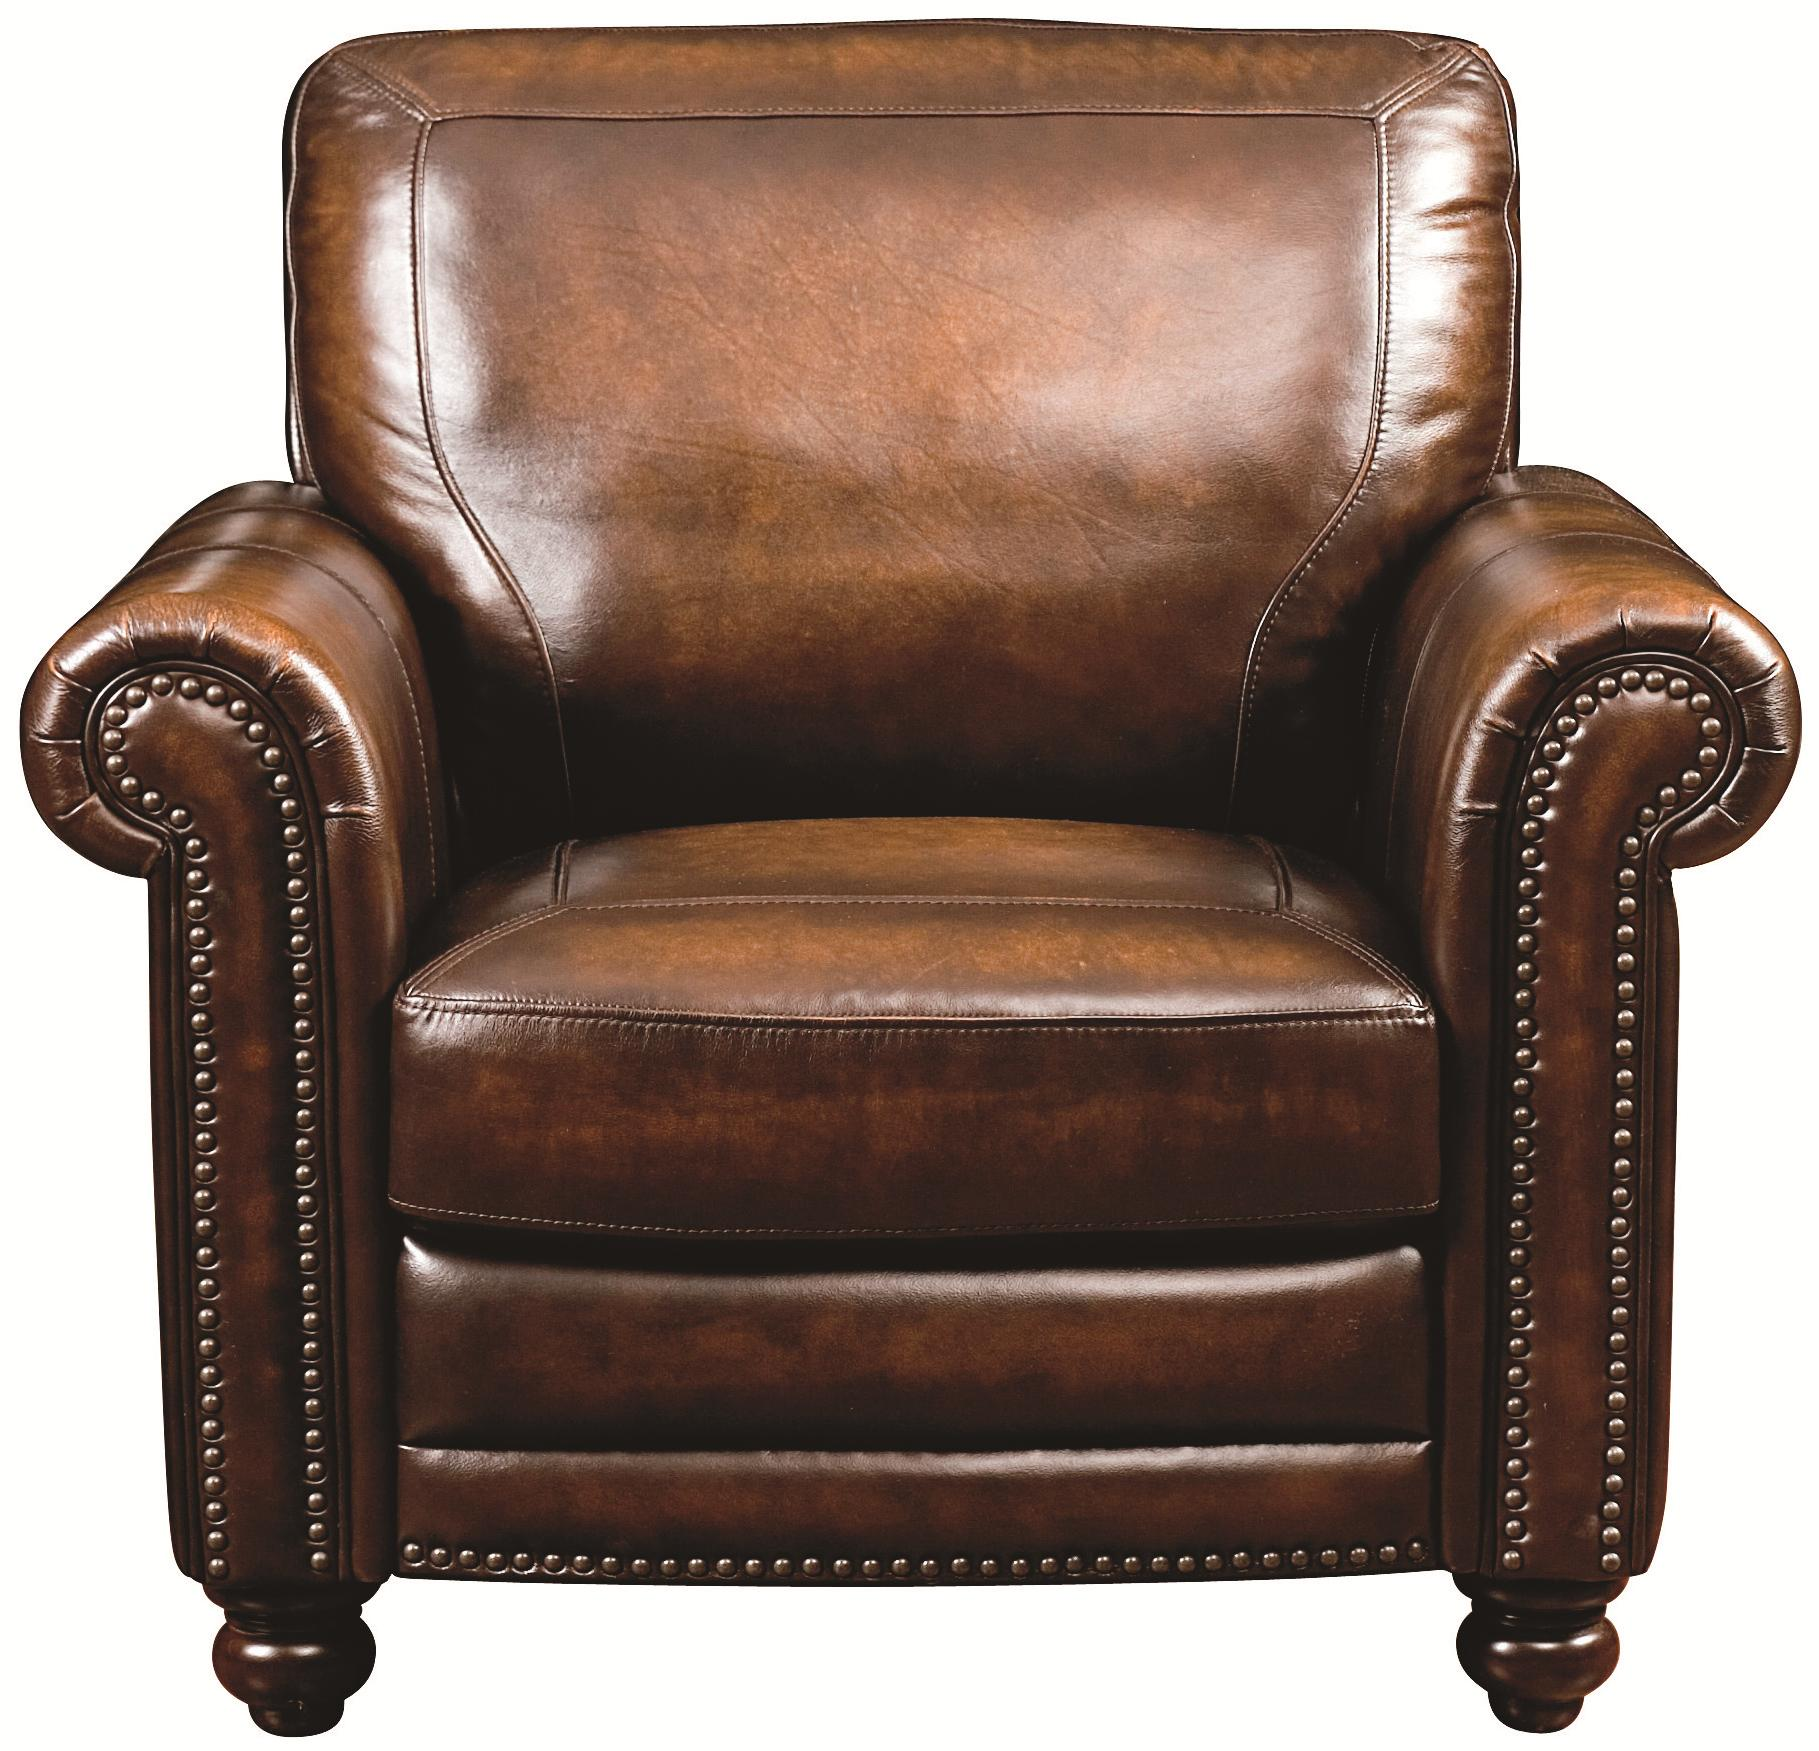 Traditional Leather Chair With Nail Head Trim Hamilton By Bett Wil Furniture Upholstered Chairs